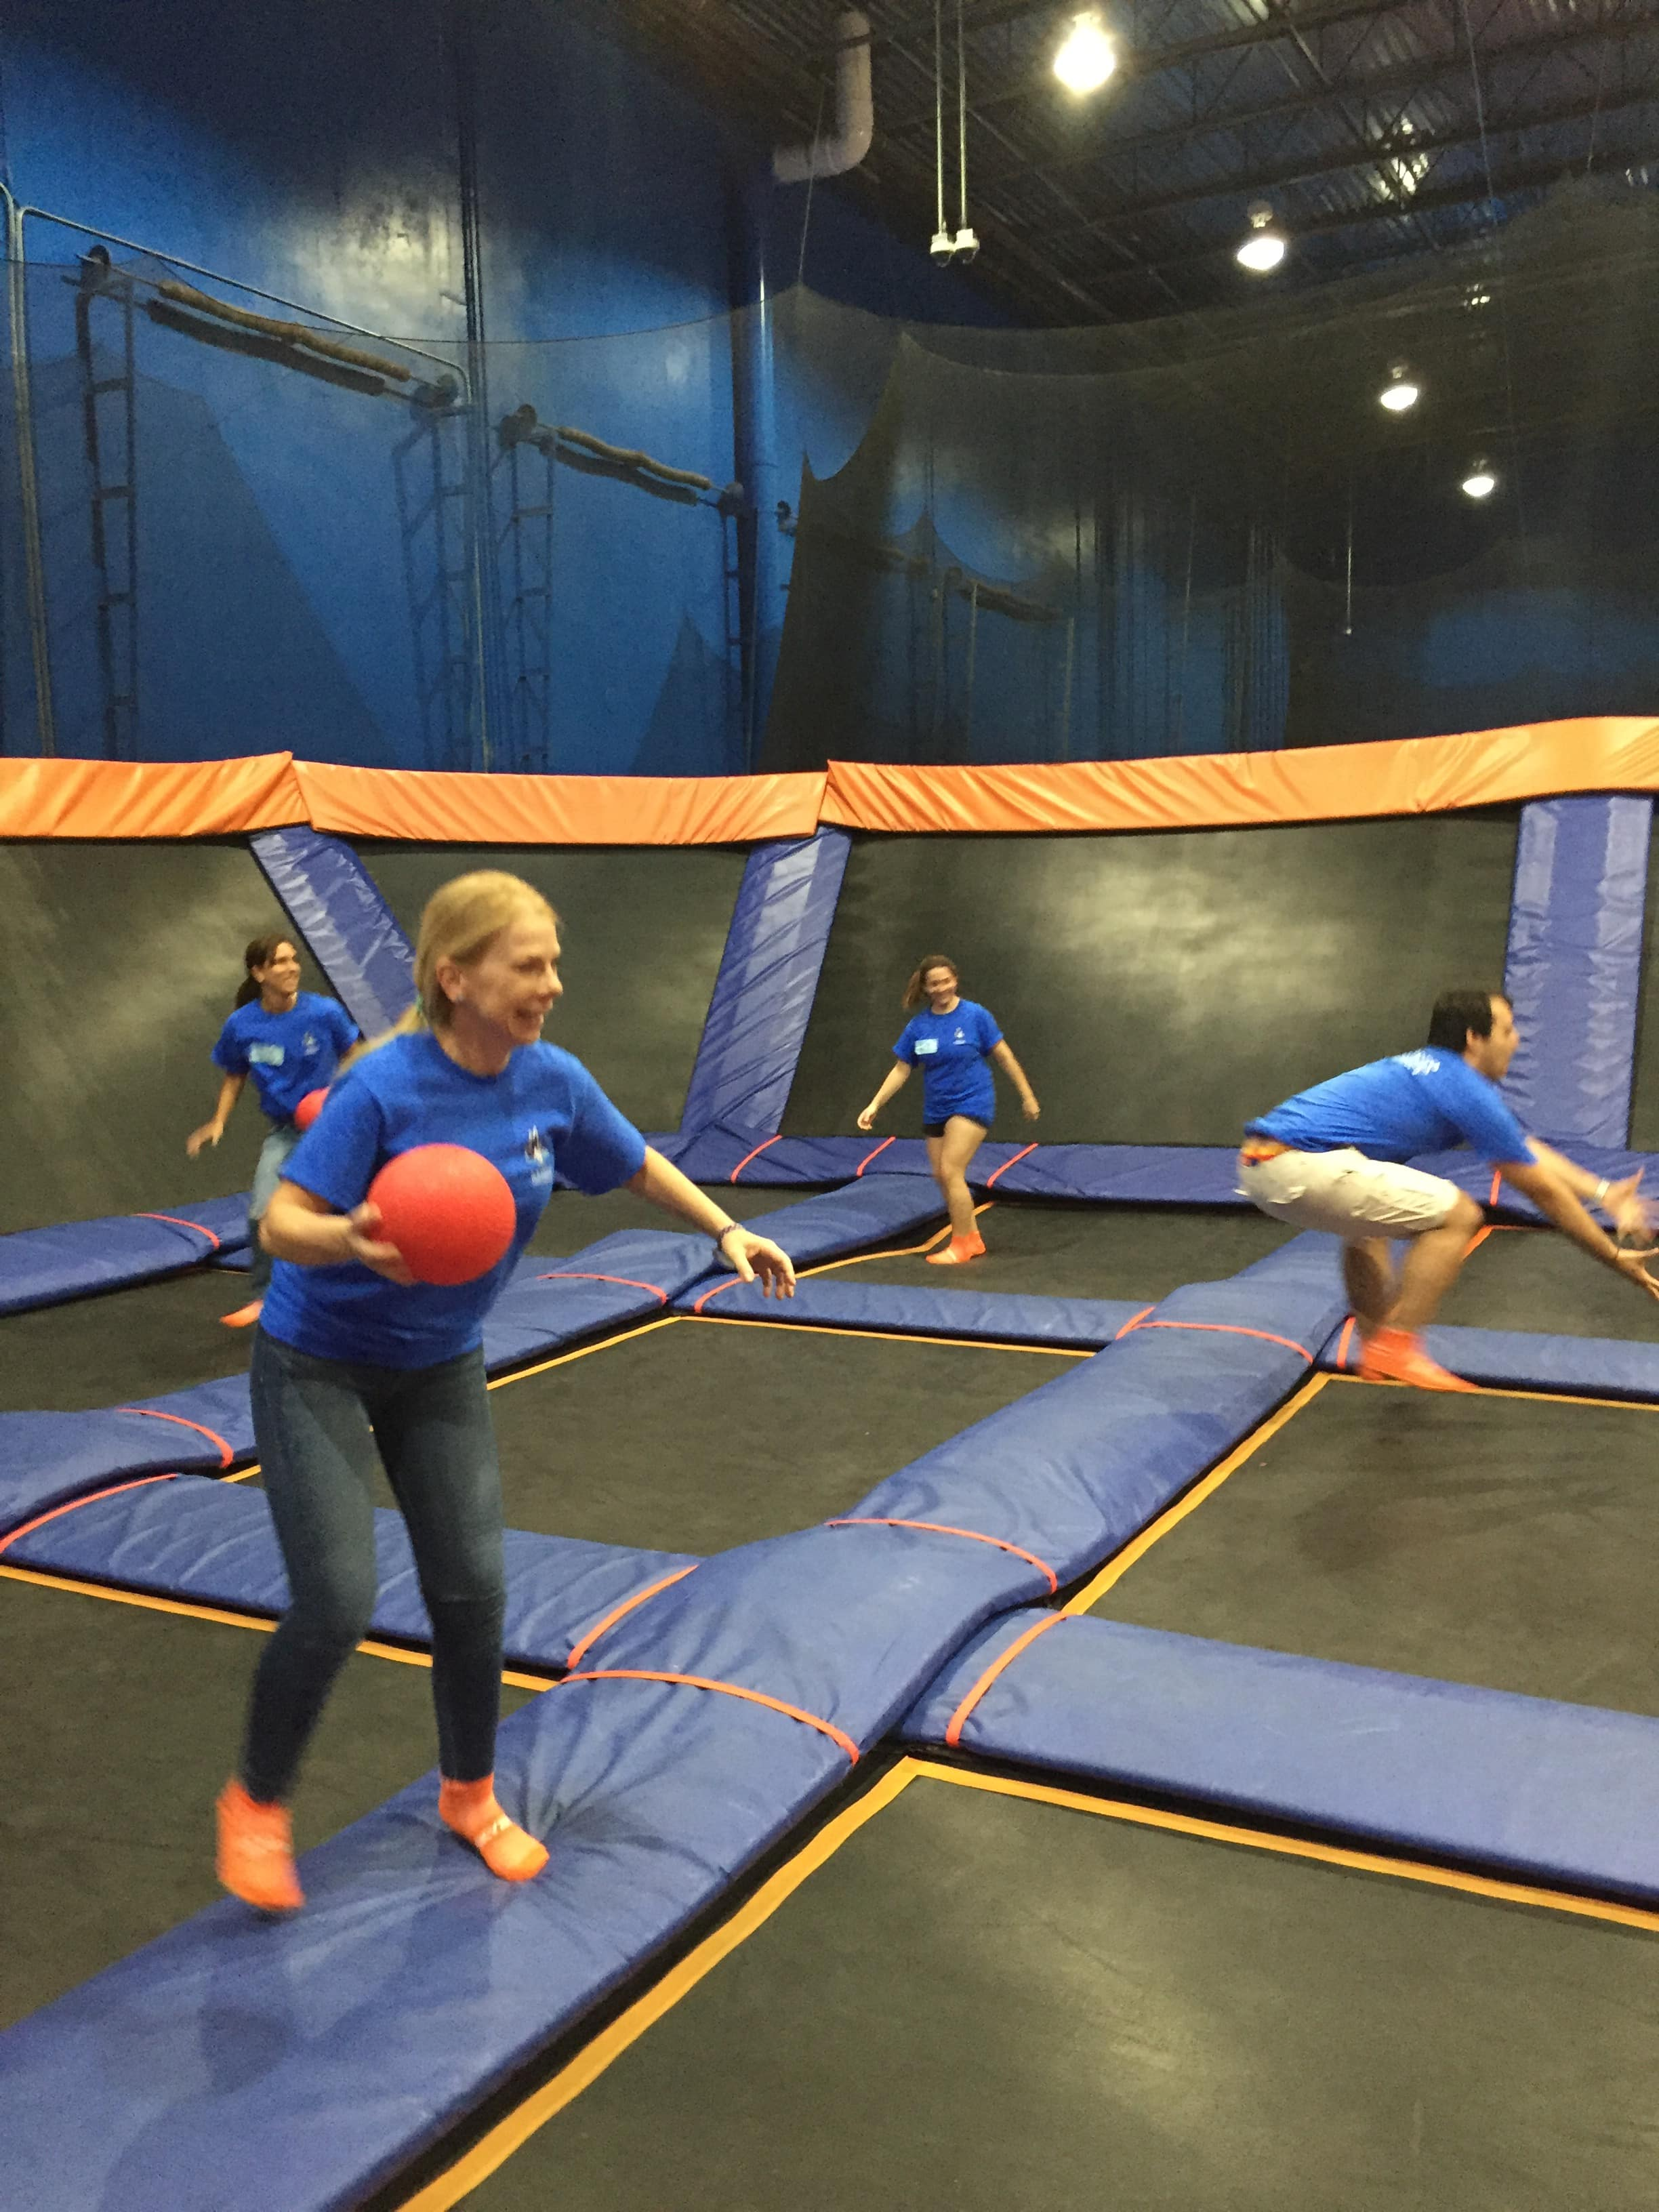 Ft. Lauderdale Participates in the Sky Zone S.O.S. Kid's Party